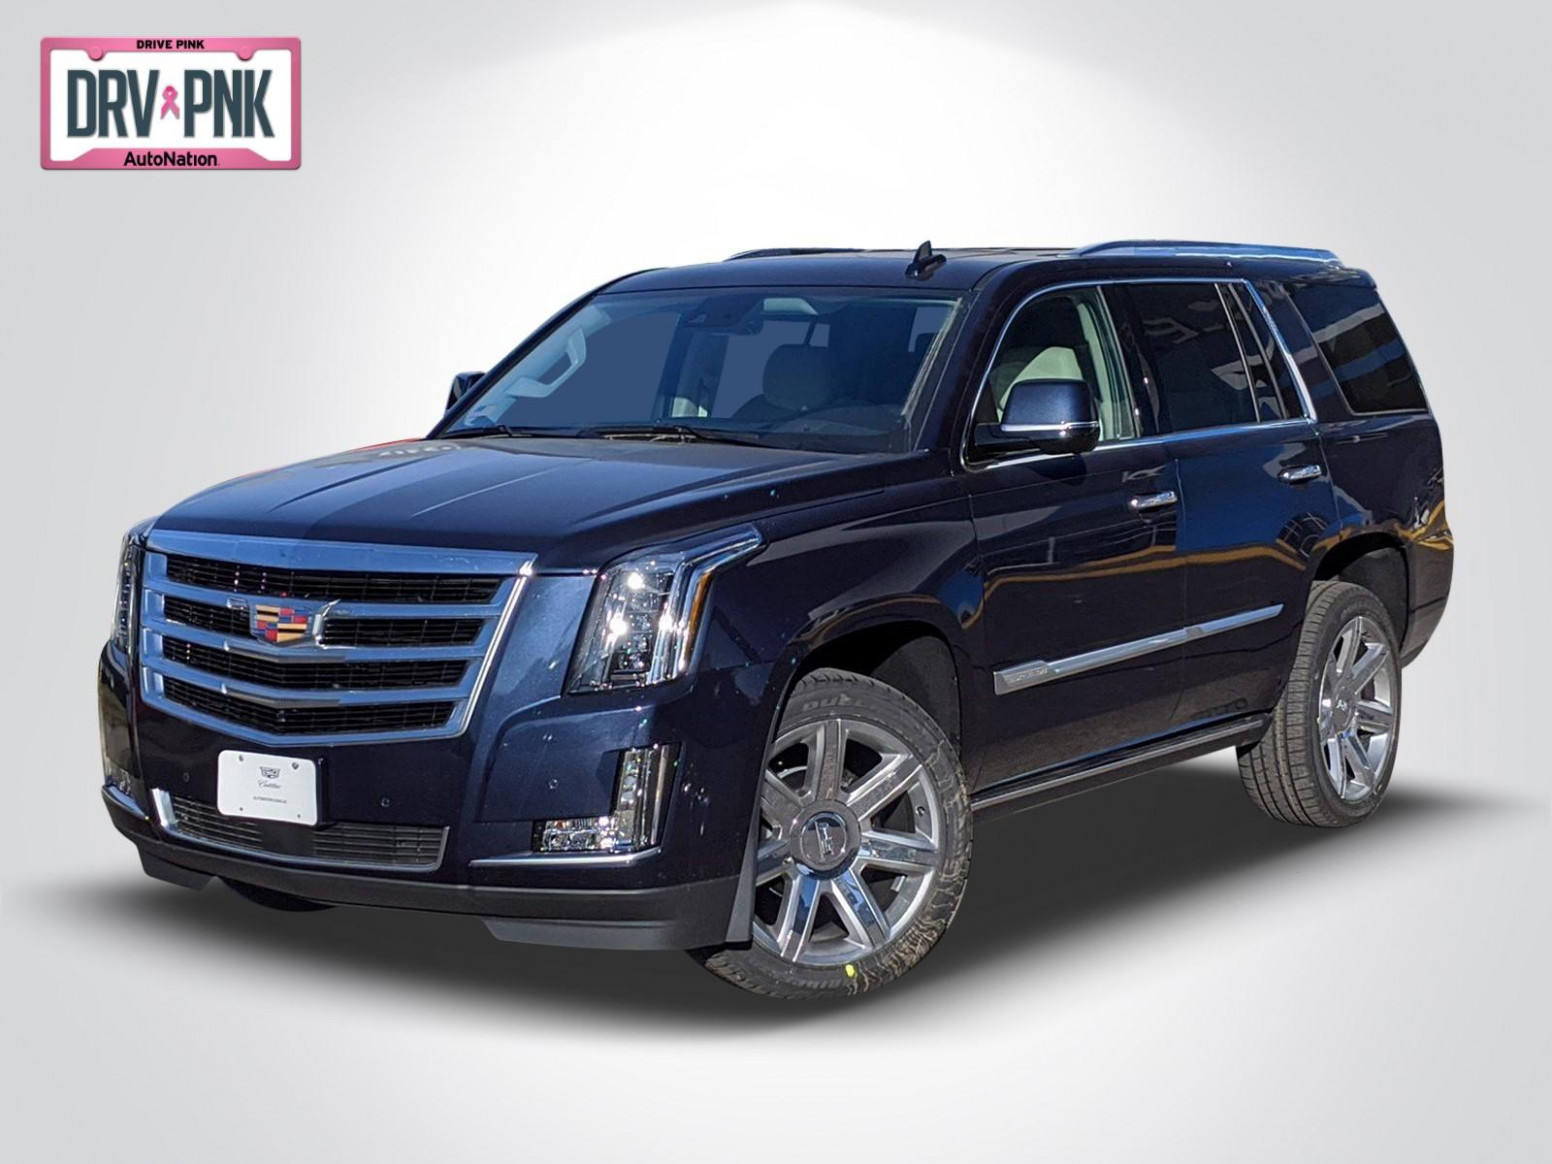 New Dark Adriatic Blue Metallic 7 Cadillac Escalade 7WD Premium ..